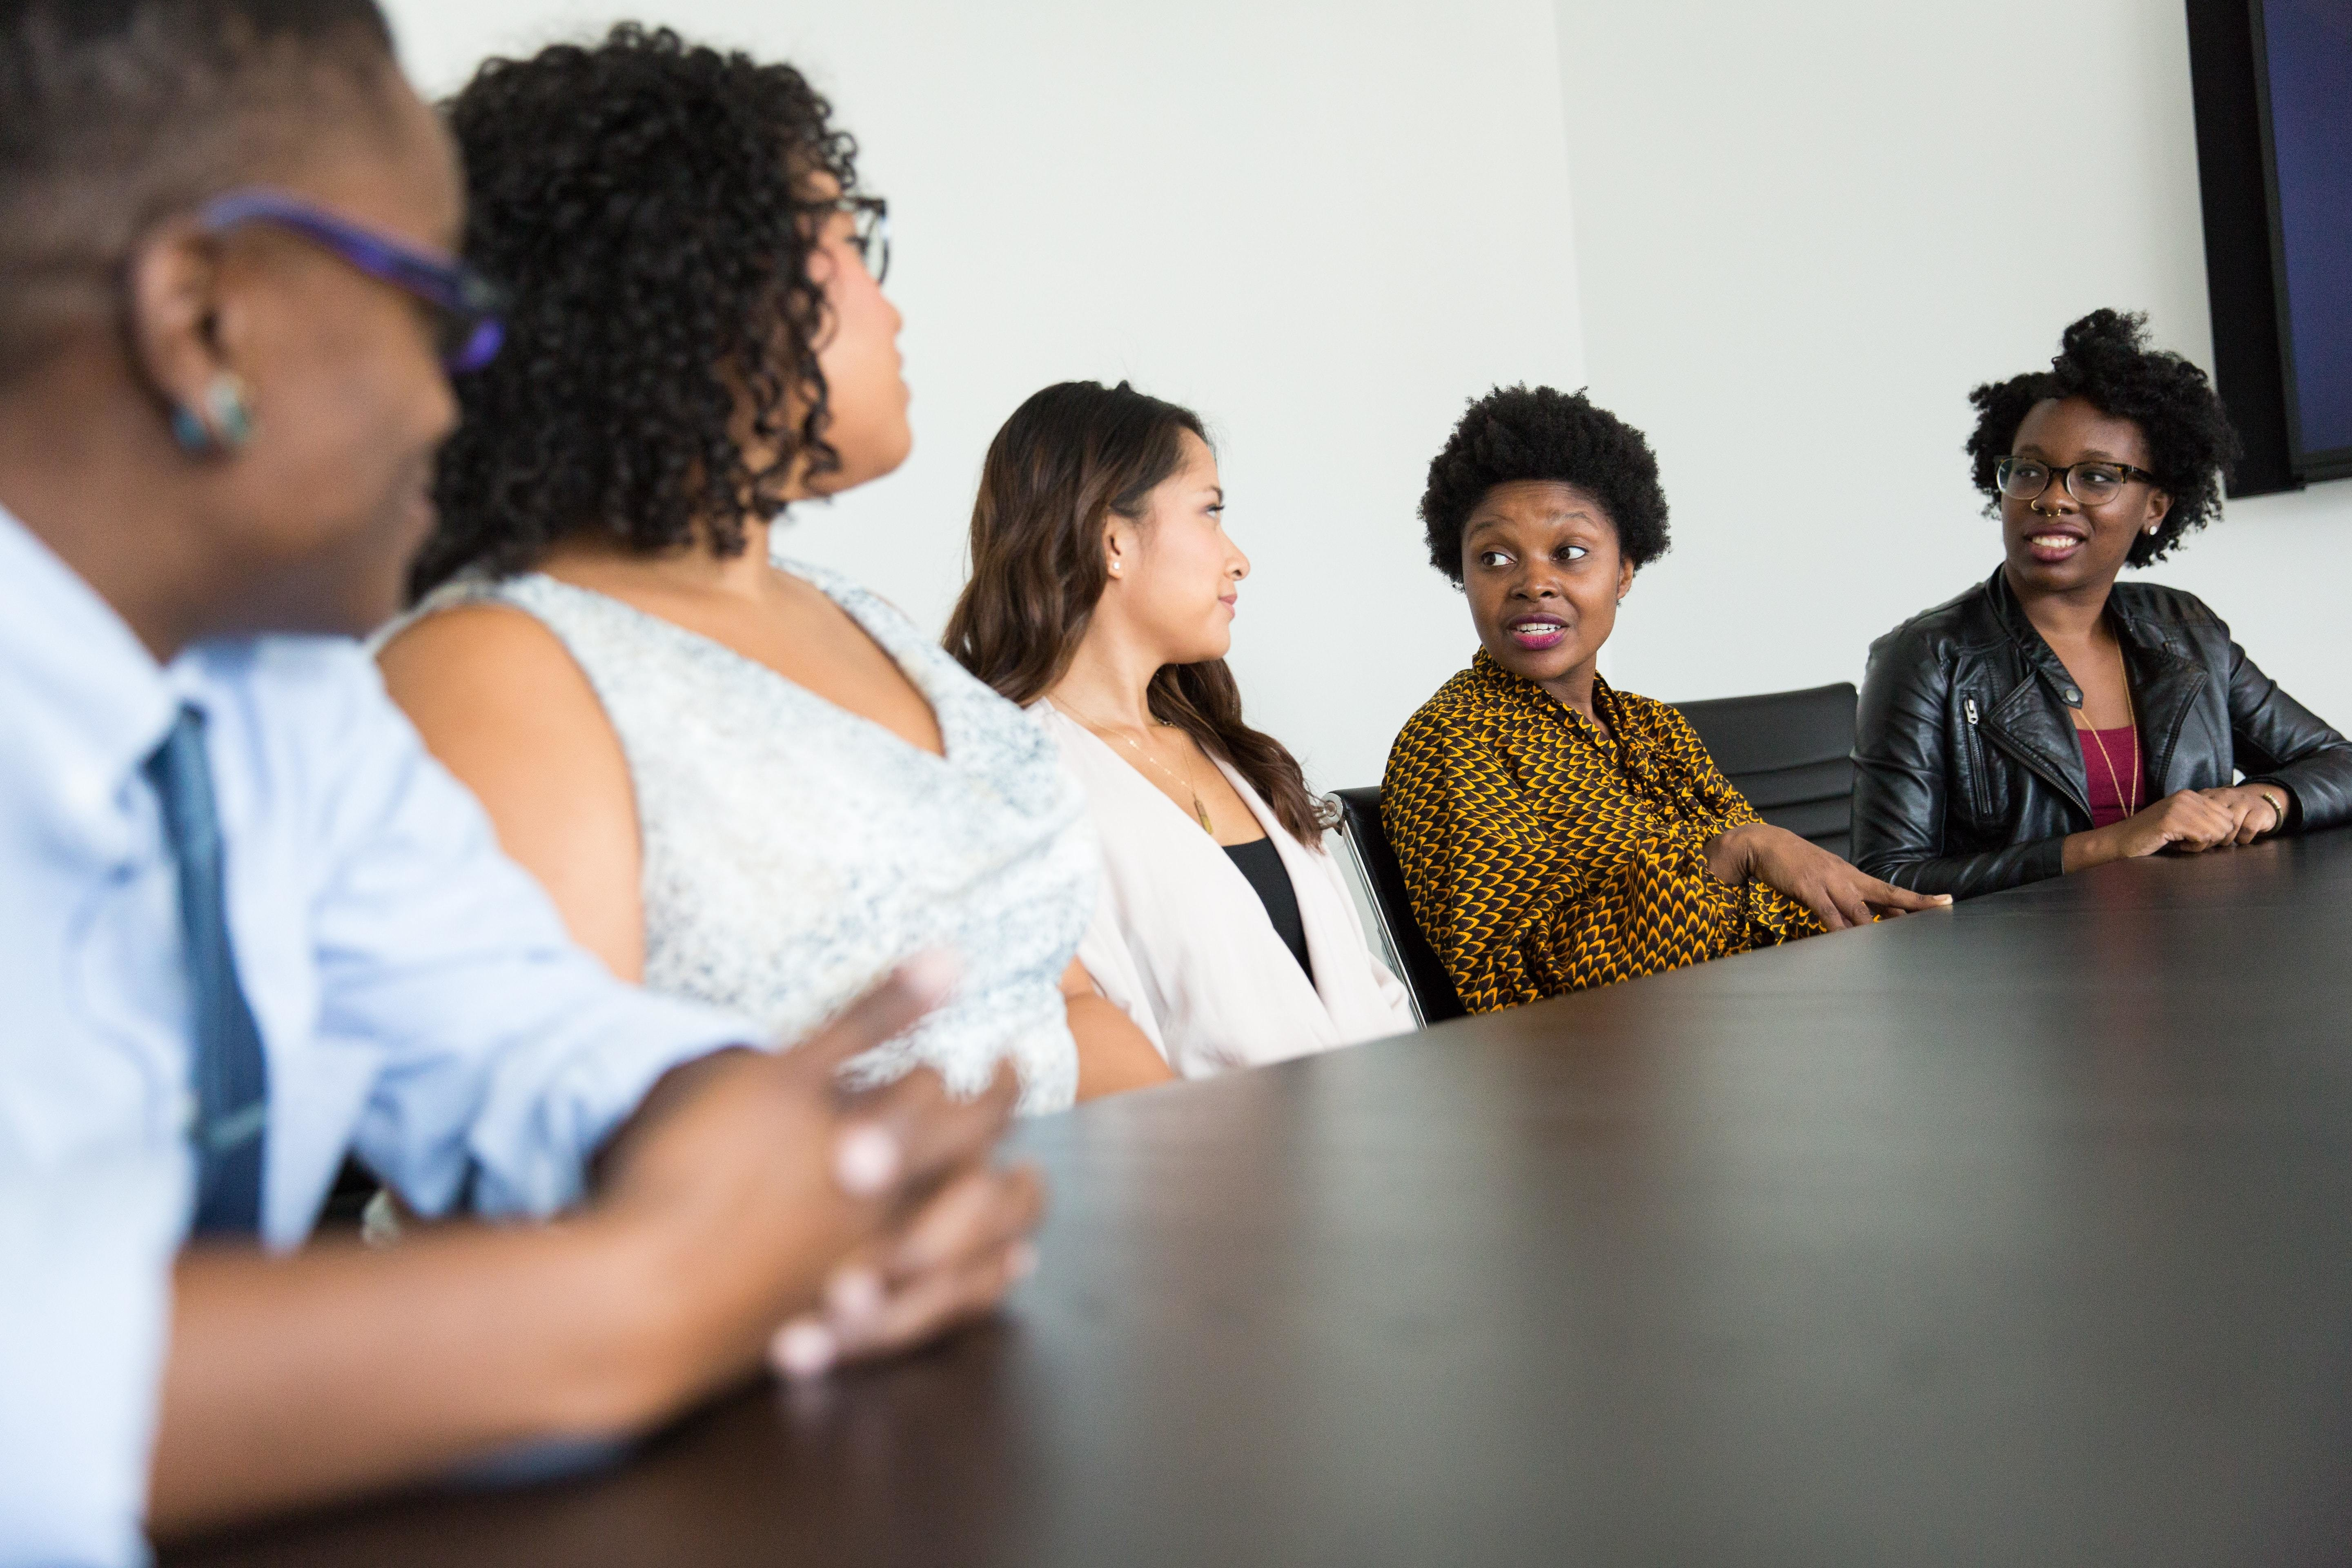 shown here is a variety of different people at a board meeting. Singapore is setting a strong example for how to incorporate diversity into workplaces like this one